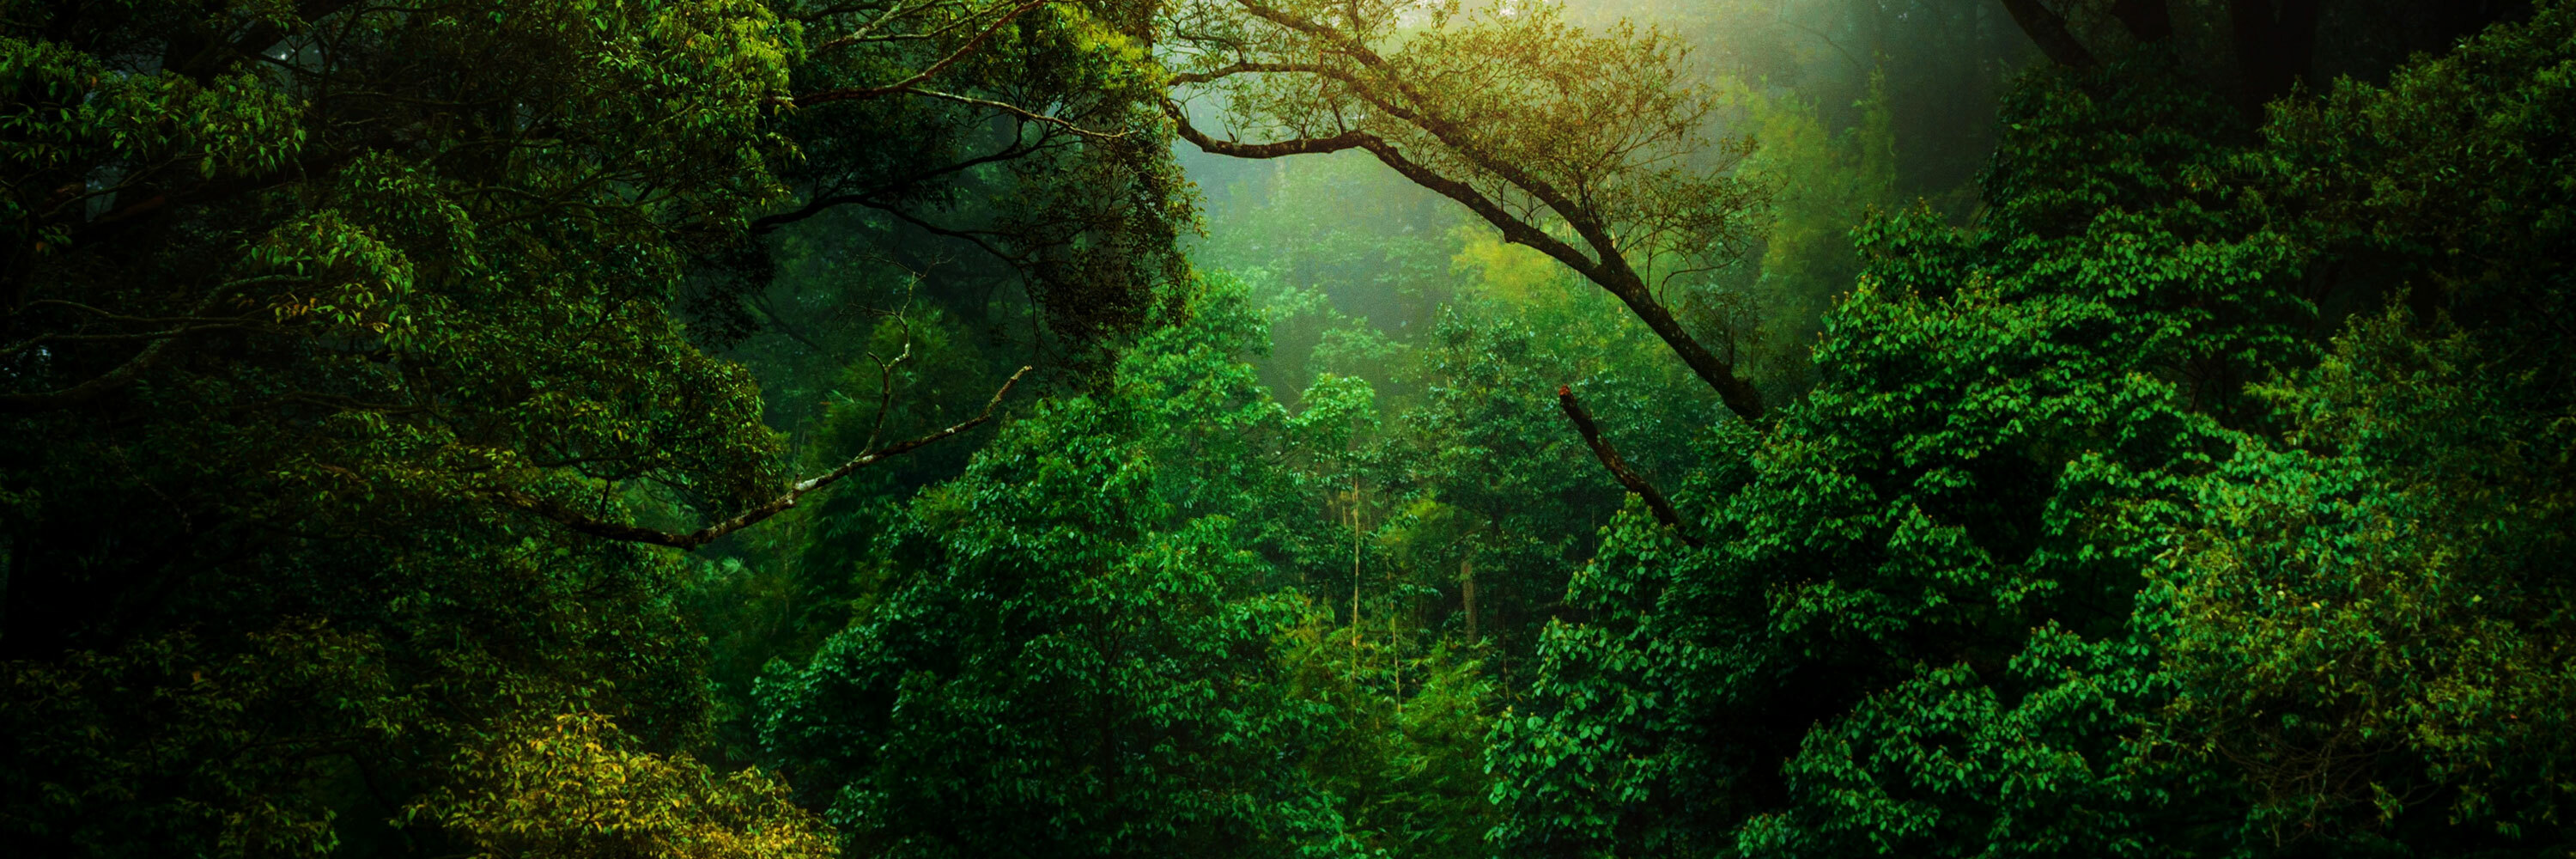 Panoramic of trees in the Amazon rainforest